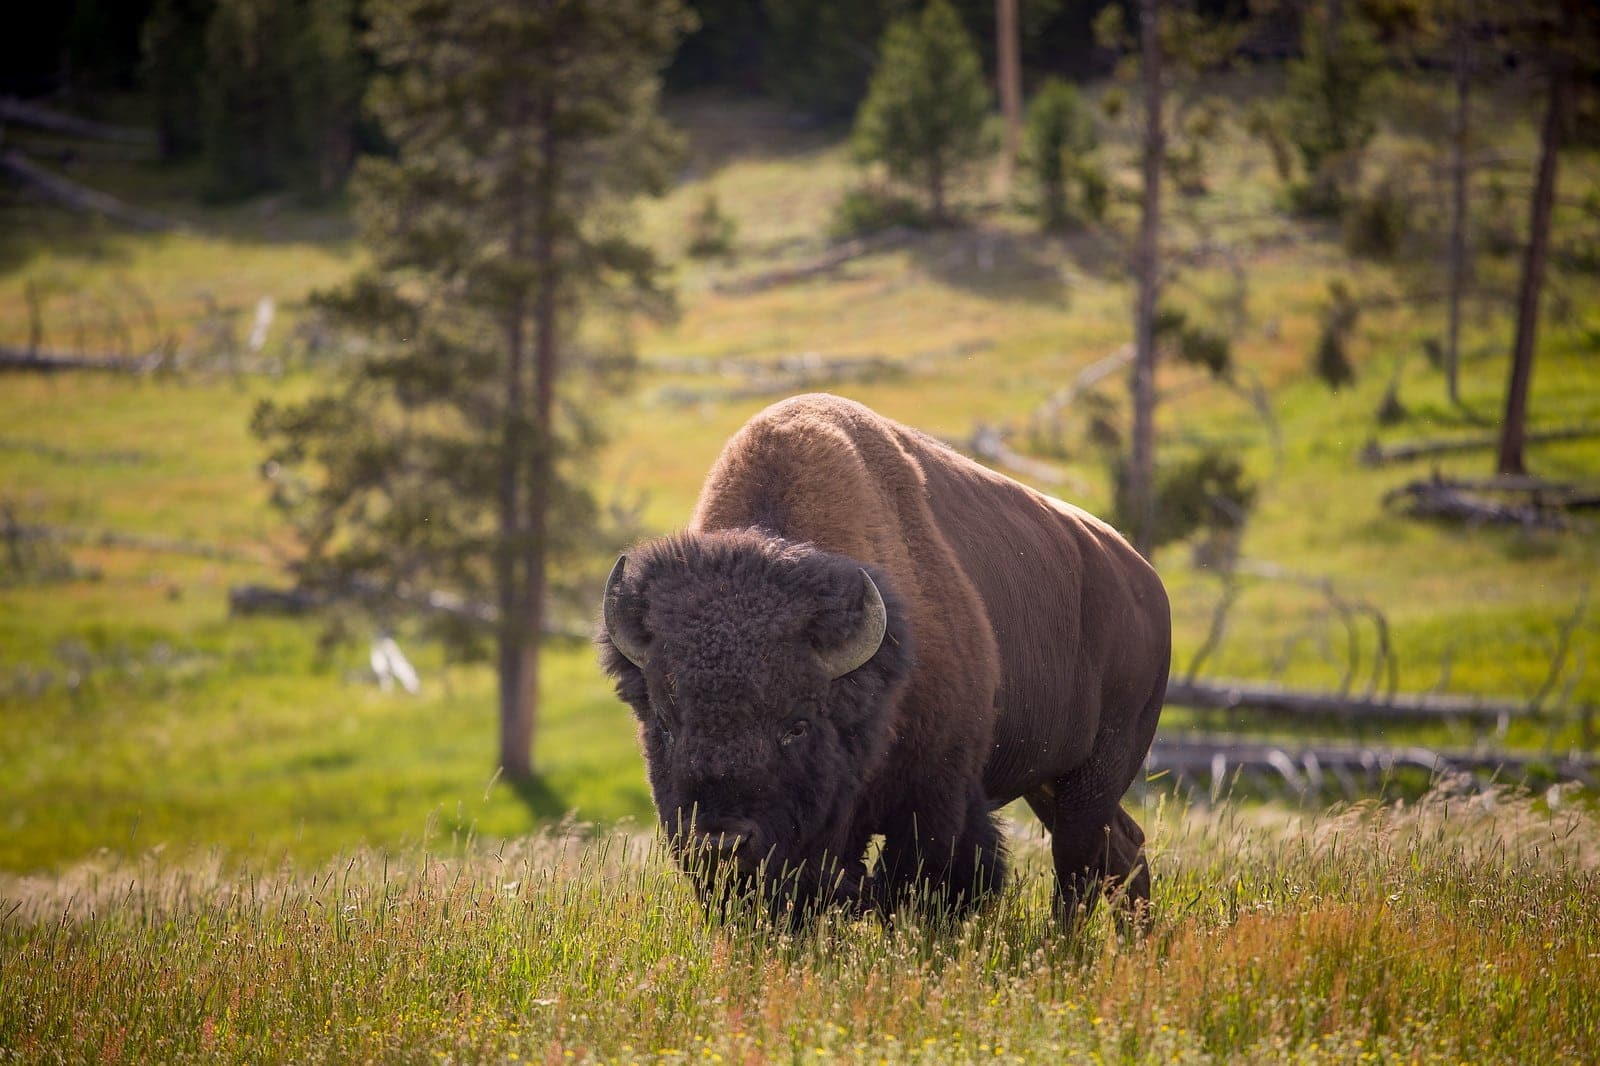 The amazing wildlife you can see while on a hiking program with Overland this summer